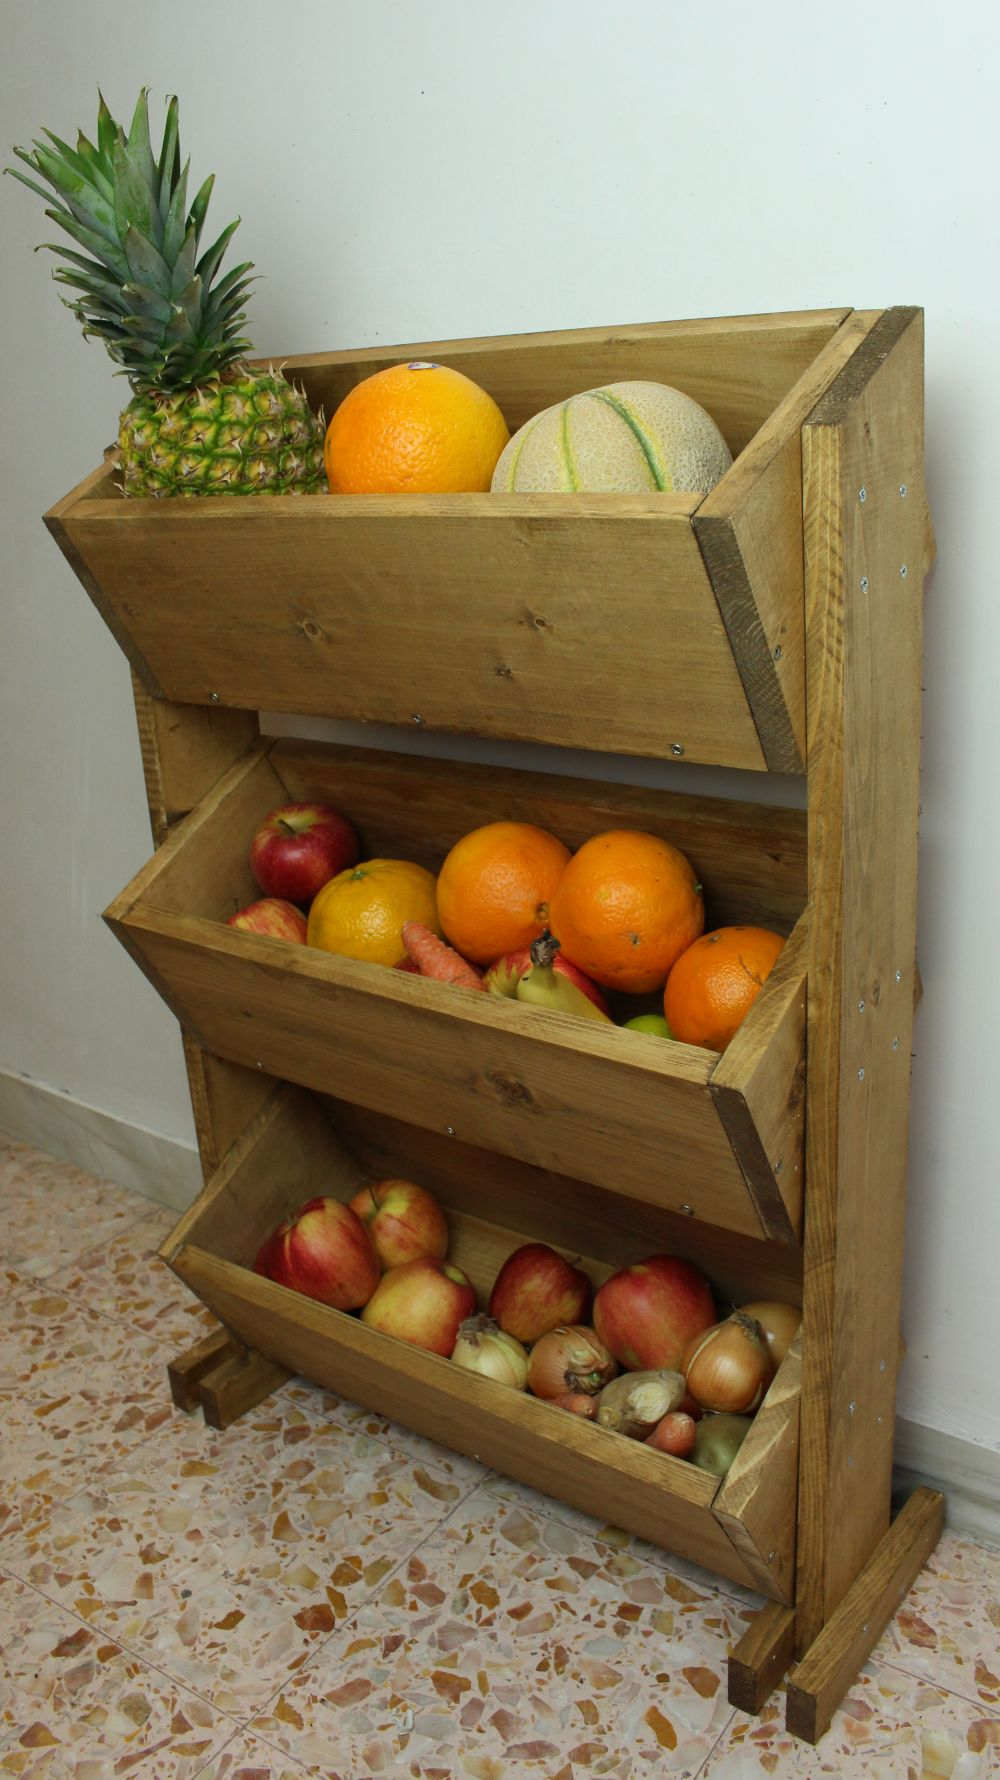 Build A Market Style Wooden Fruit Holder